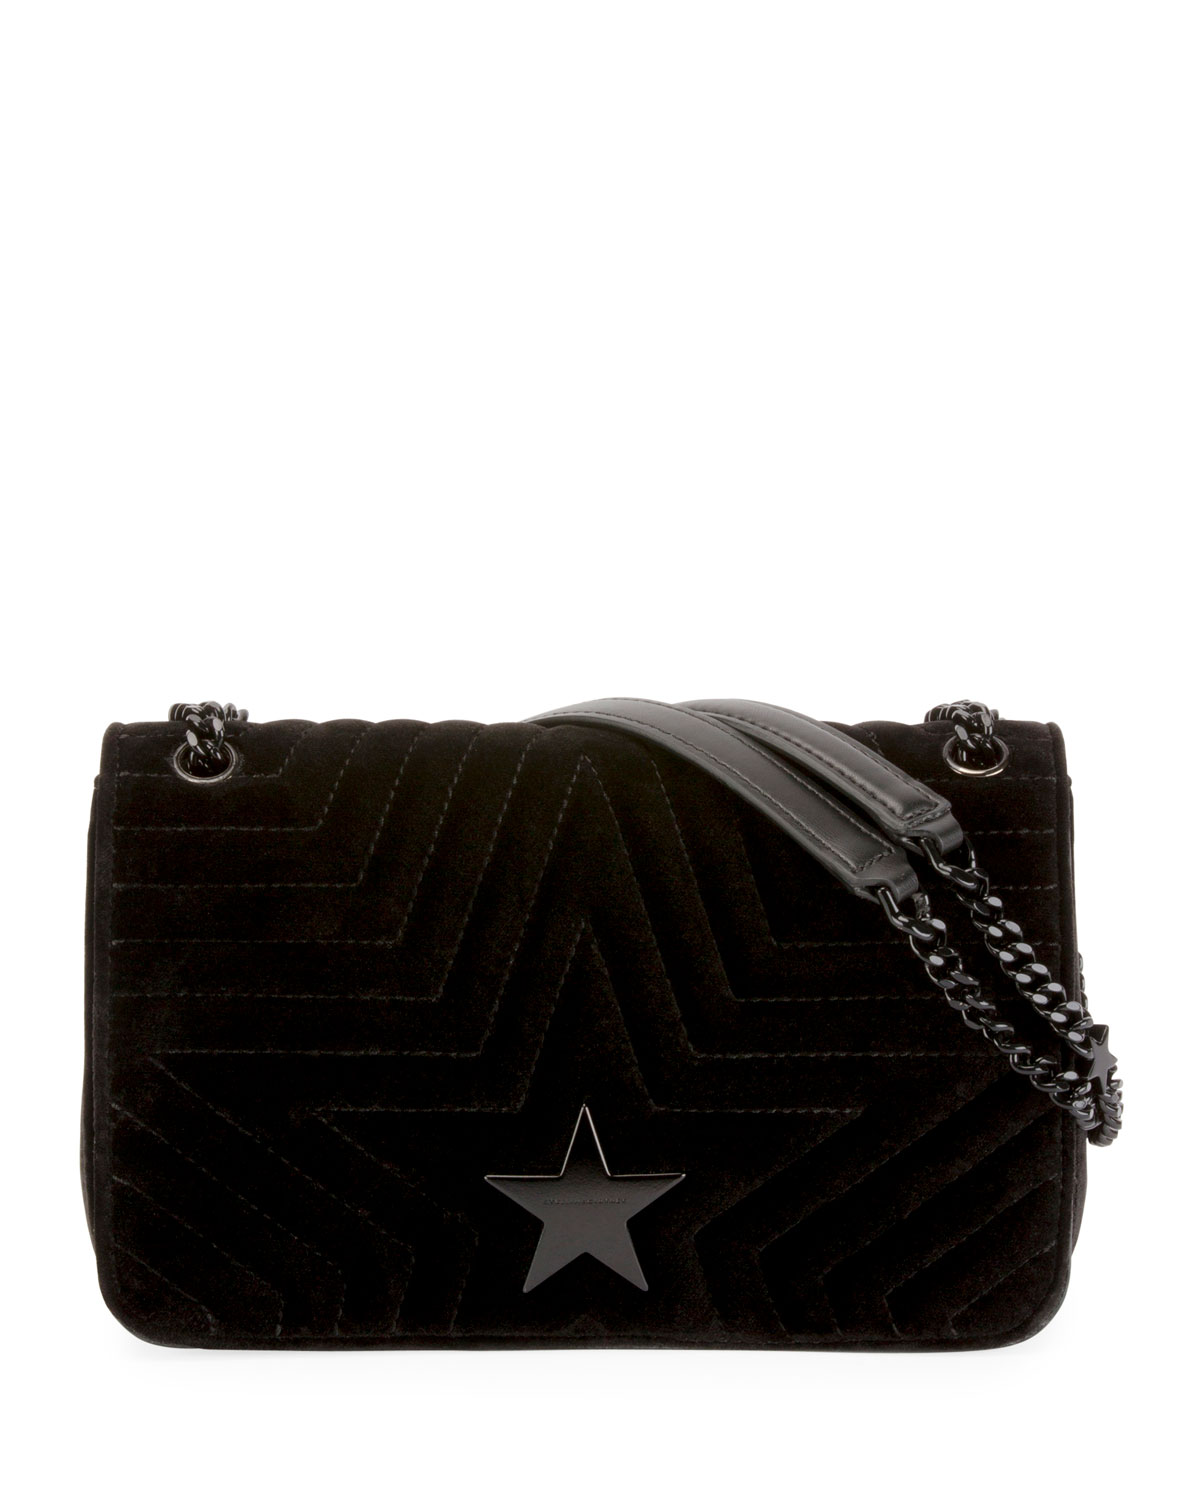 90fff2c675f3 Stella McCartney Stella Star Small Velvet Shoulder Bag